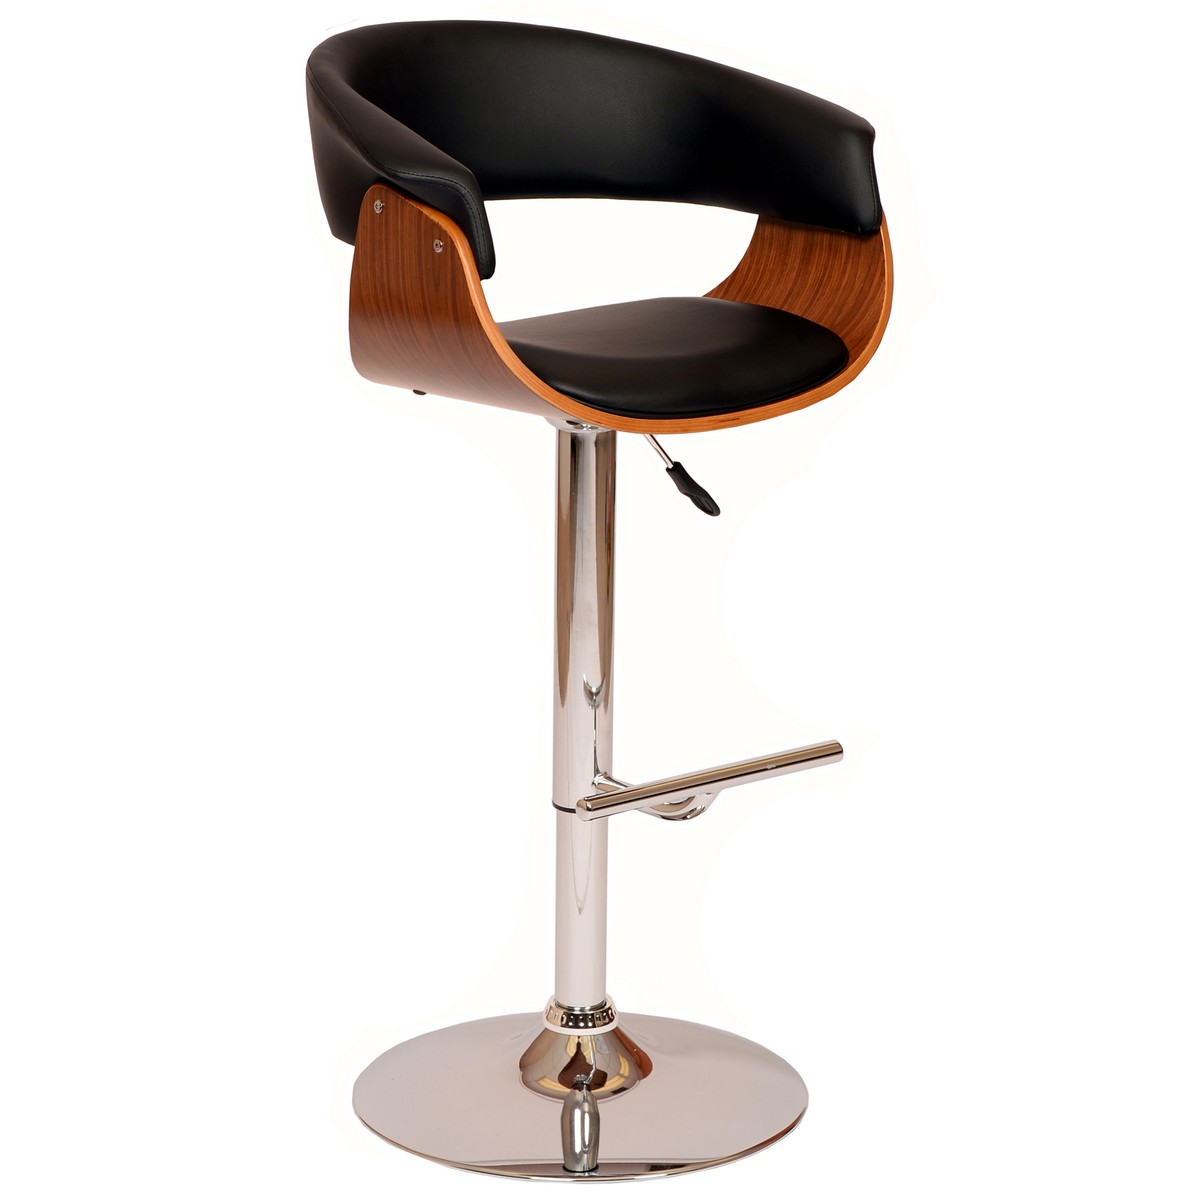 Armen Living Paris Swivel Barstool In Black Leatherette/ Walnut Veneer and Chrome Base